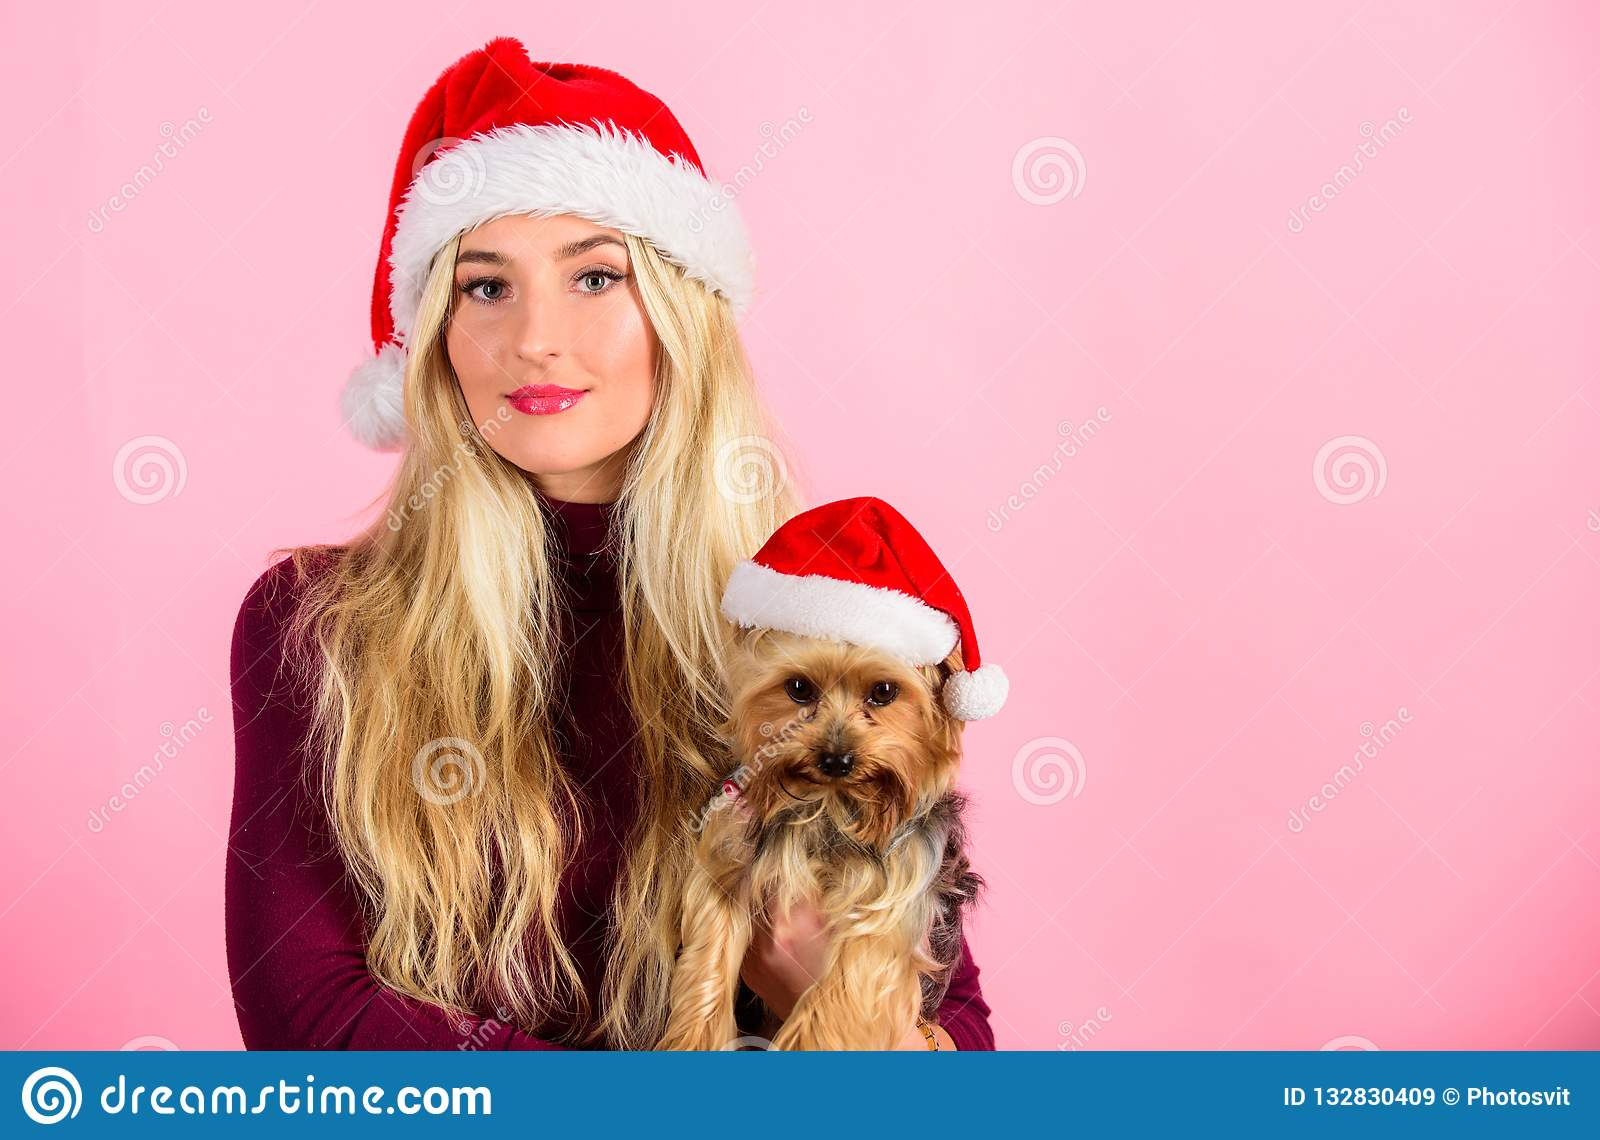 Girl attractive blonde hold dog pet pink background. Woman with puppy wear santa hat. Celebrate christmas with pets